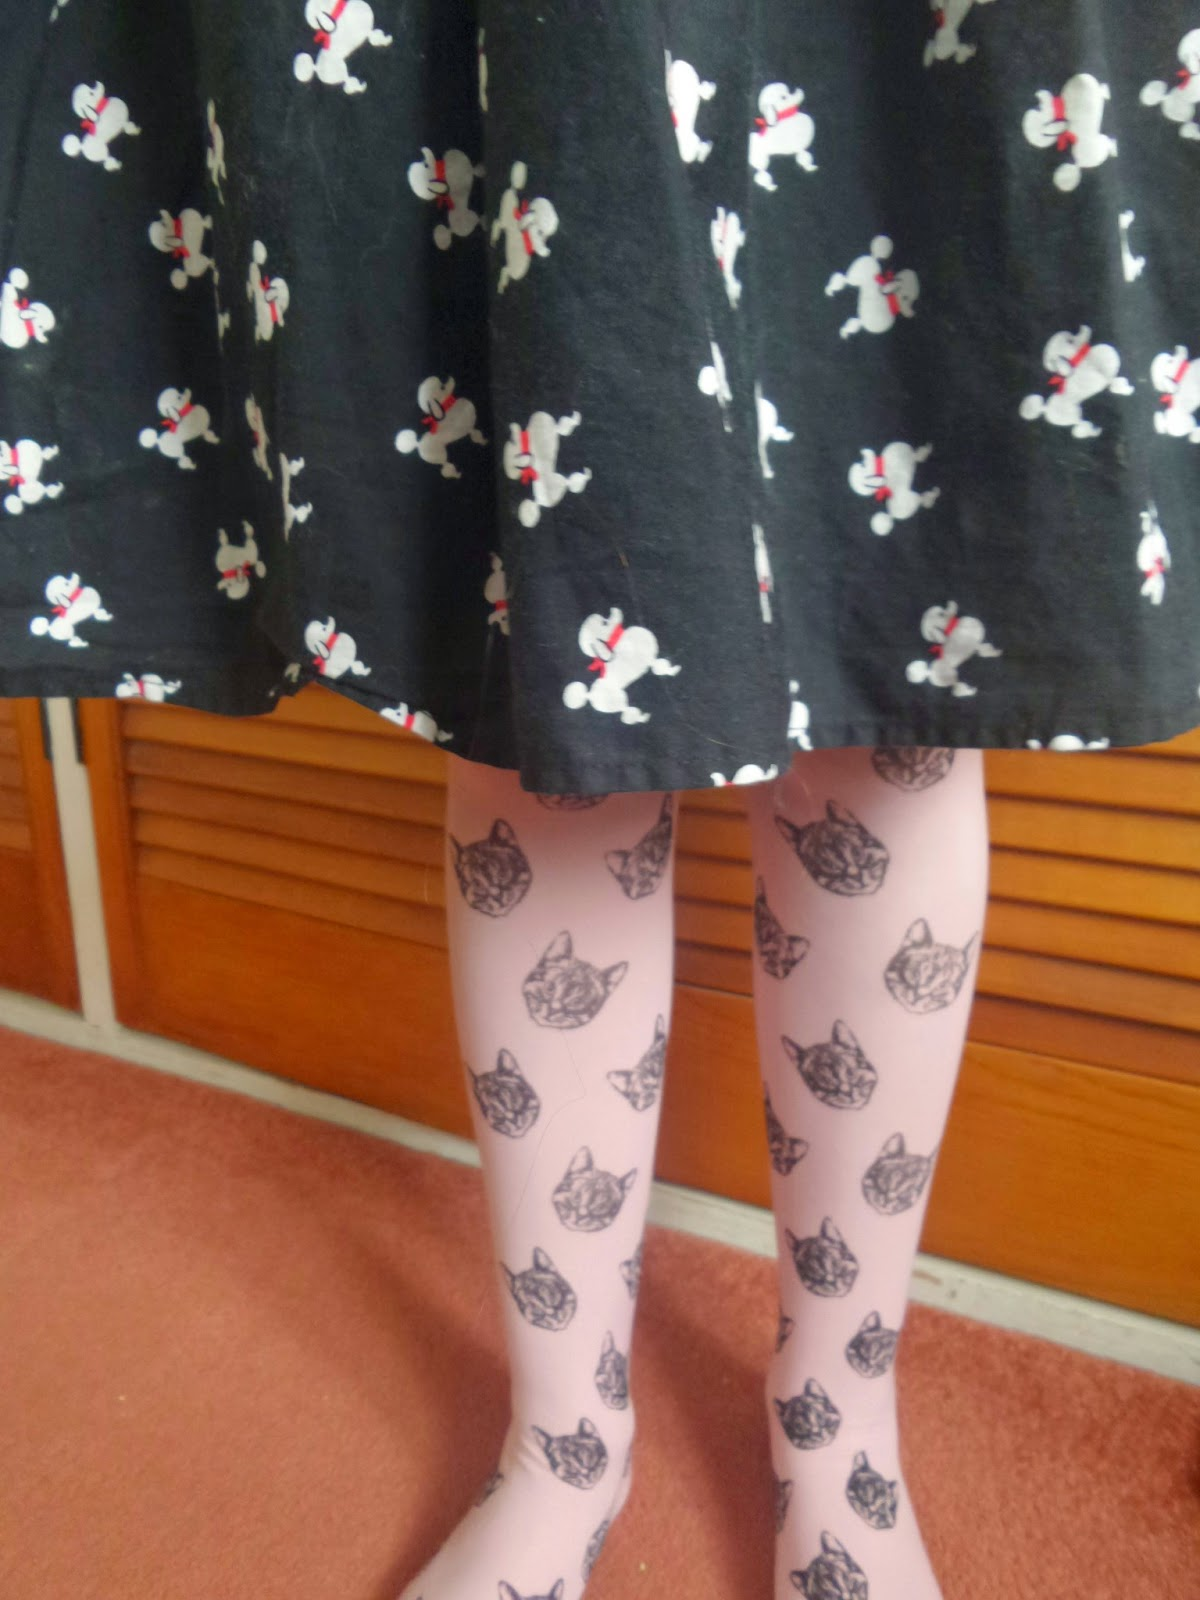 Top Ender with Dogs on her skirt and cat heads on her tights